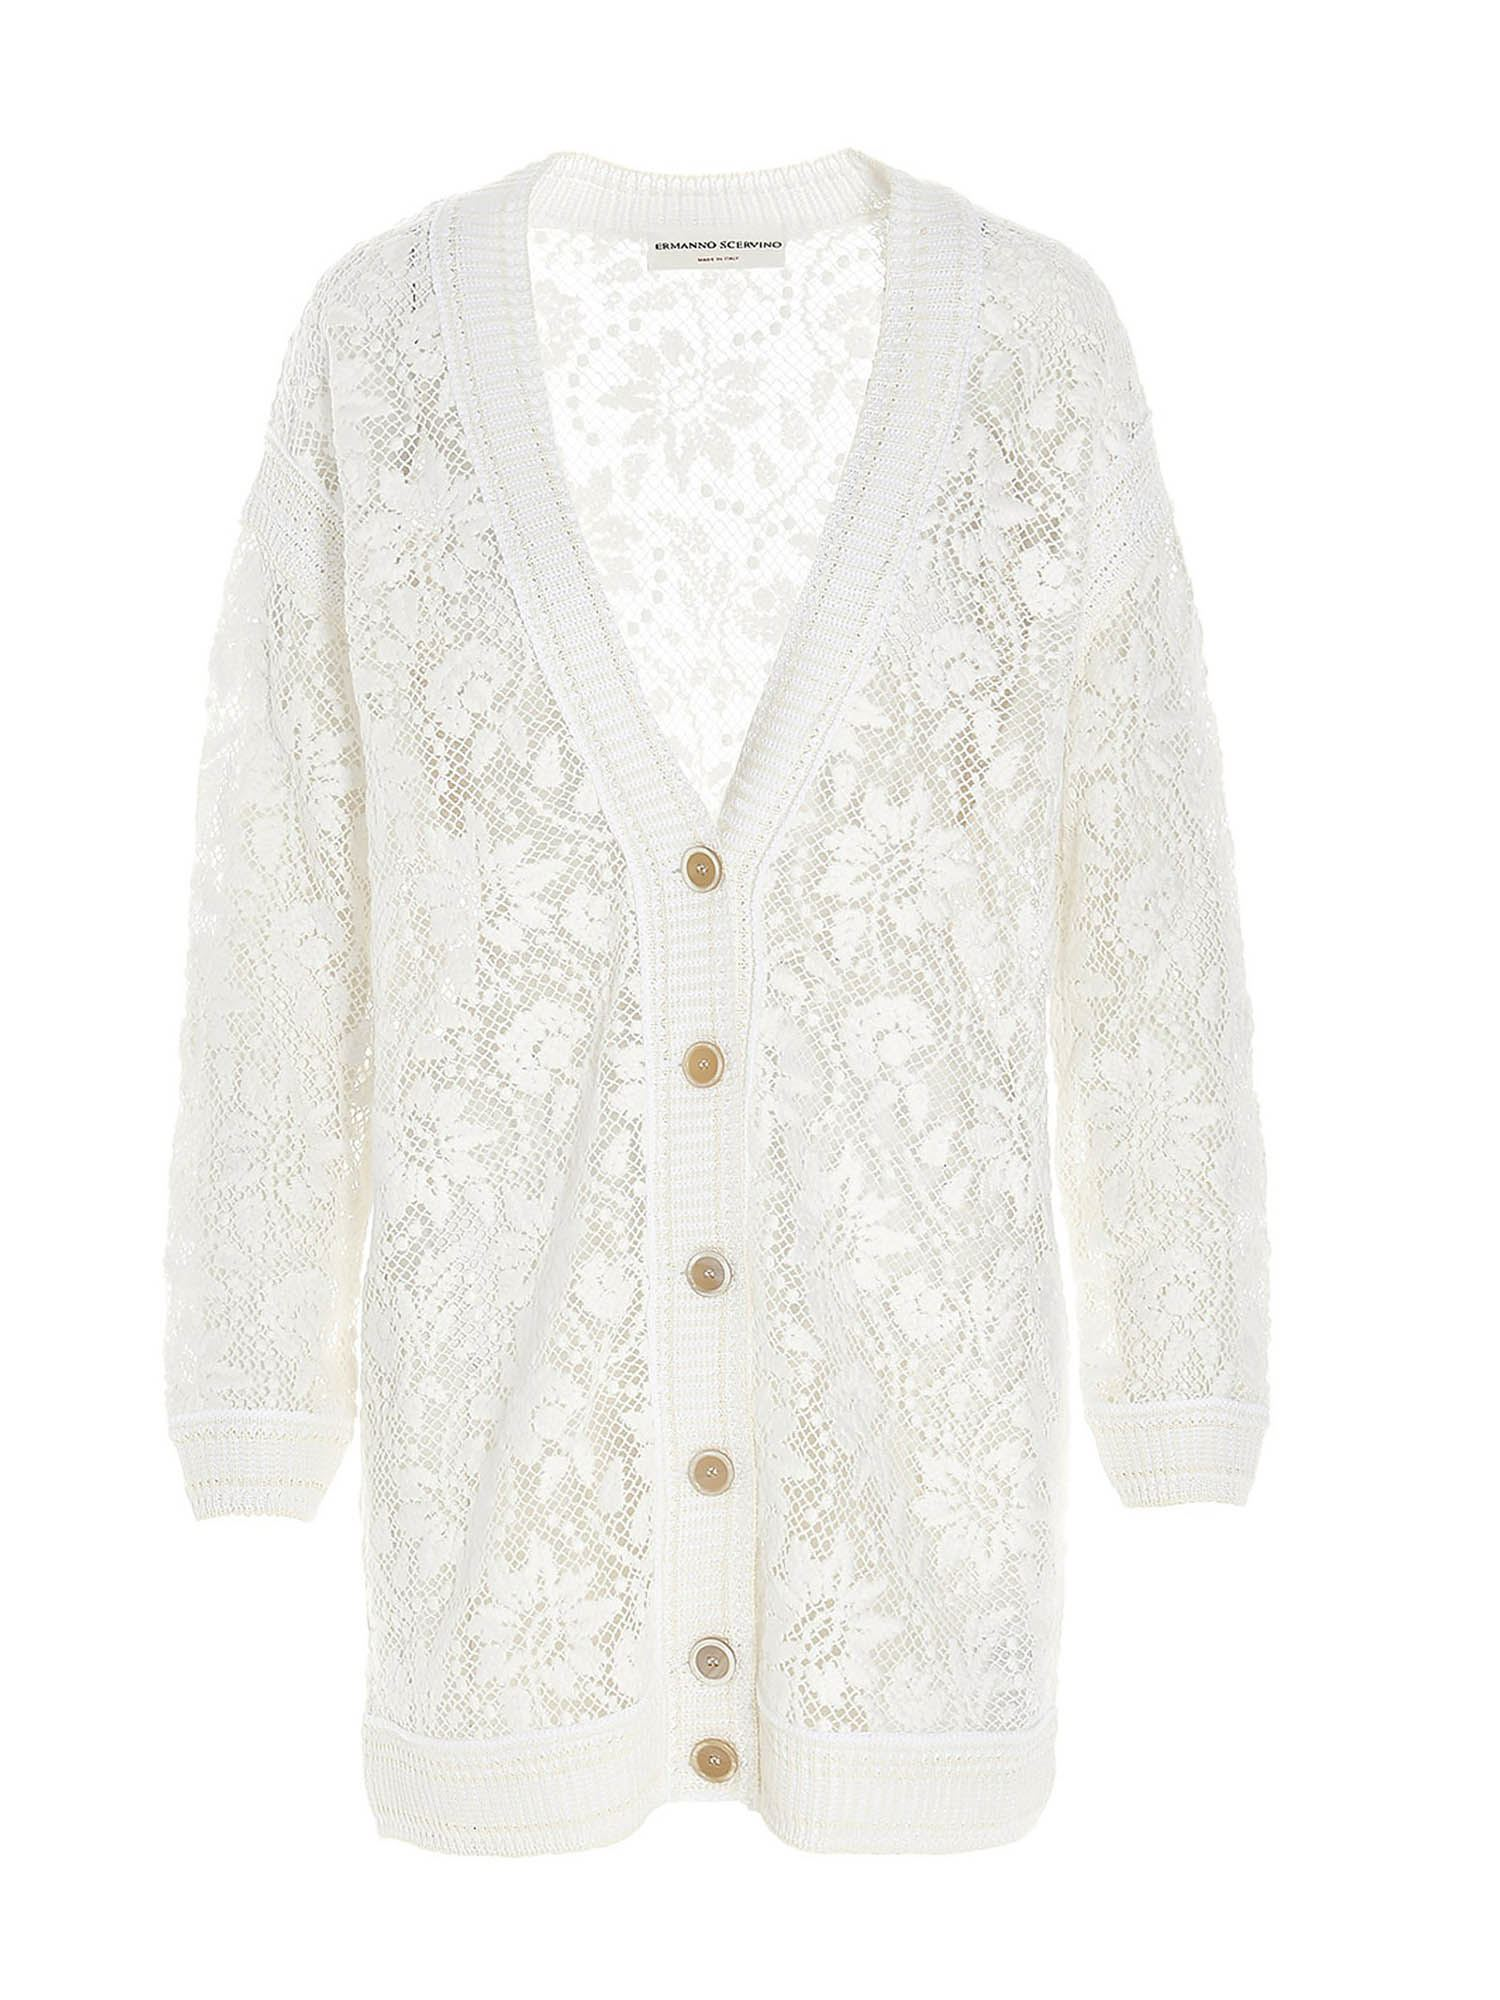 Ermanno Scervino V-NECK LACE CARDIGAN IN WHITE